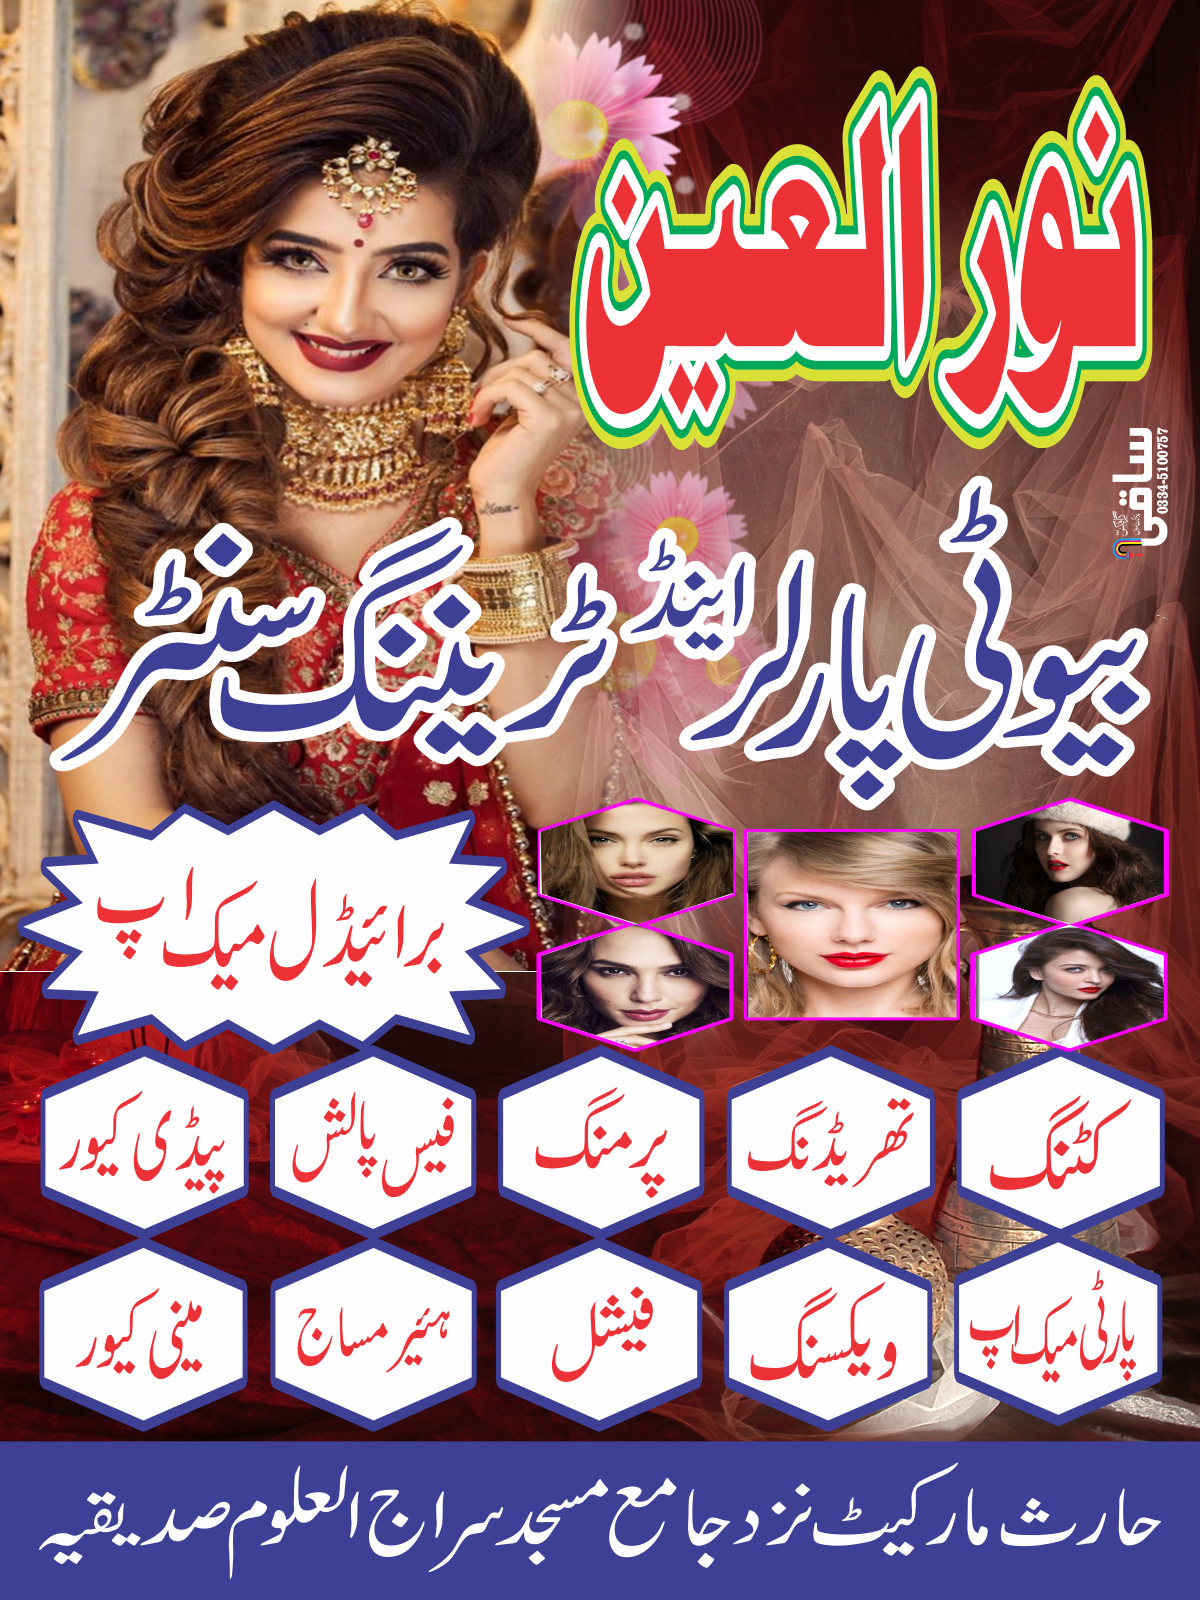 Beauty Parlour Banner Saqi Arts